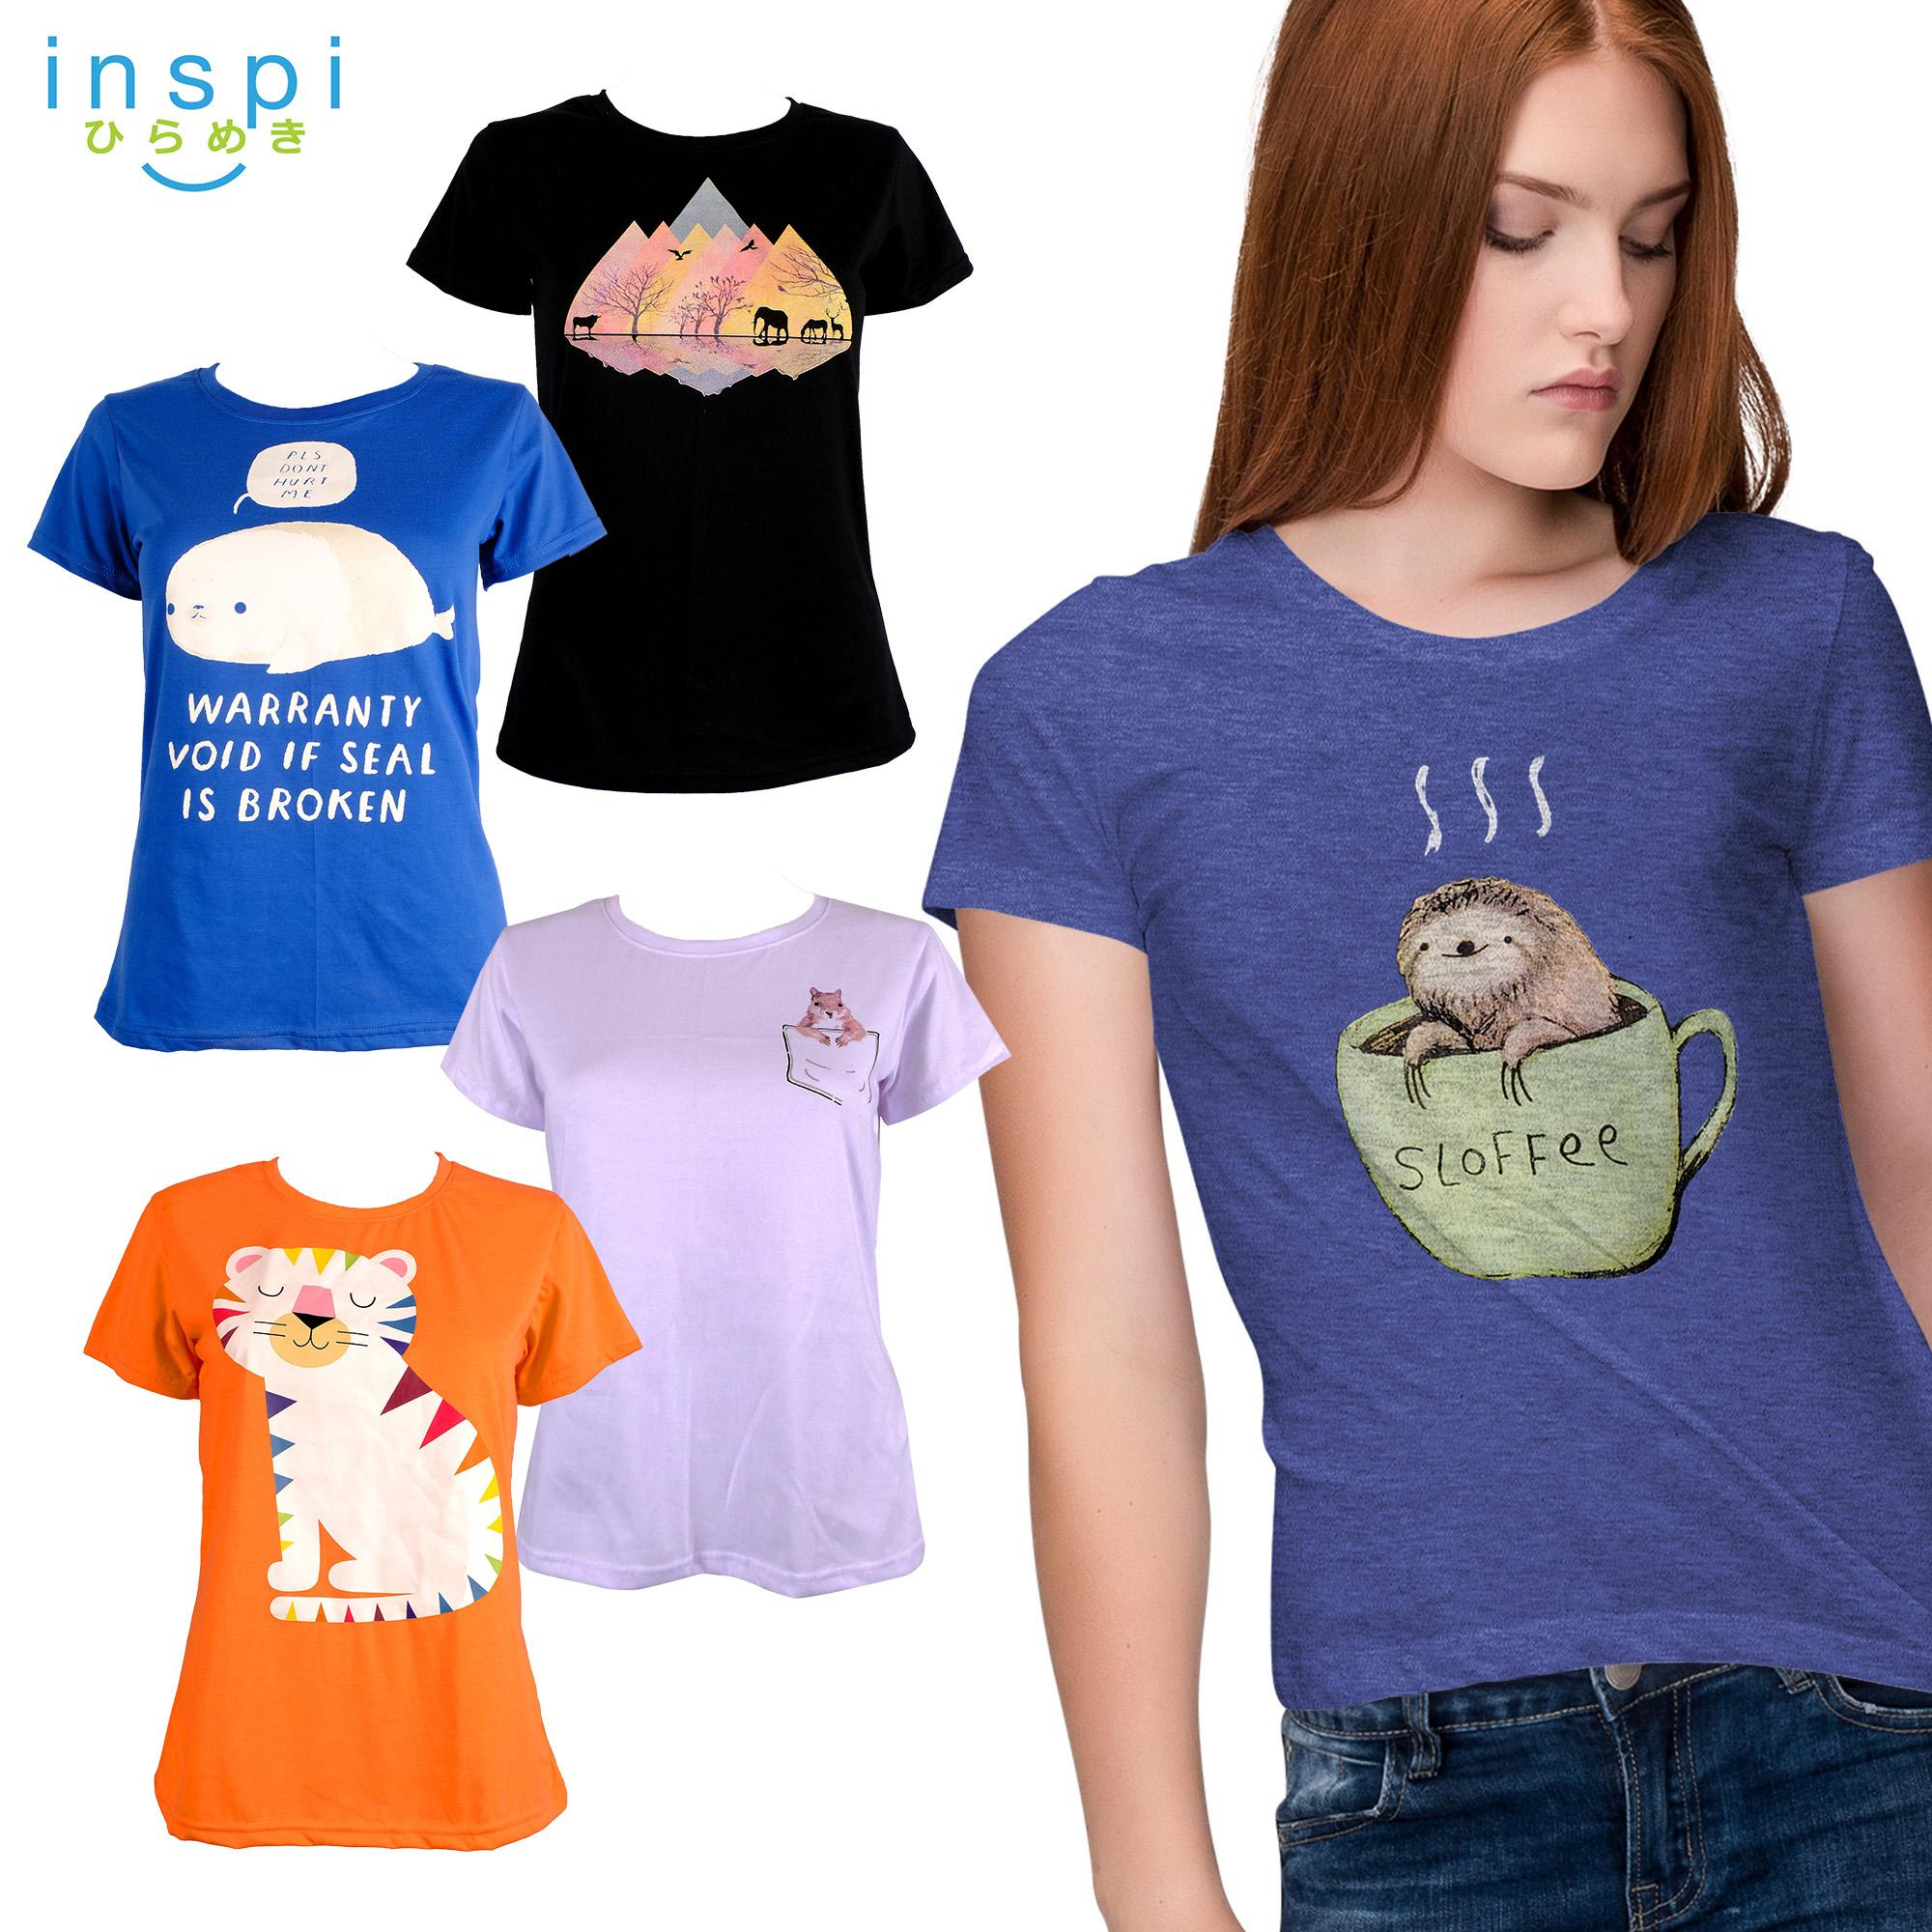 862db34d721d2 INSPI Tees Ladies Pet Collection tshirt printed graphic tee Ladies t shirt  shirts women tshirts for